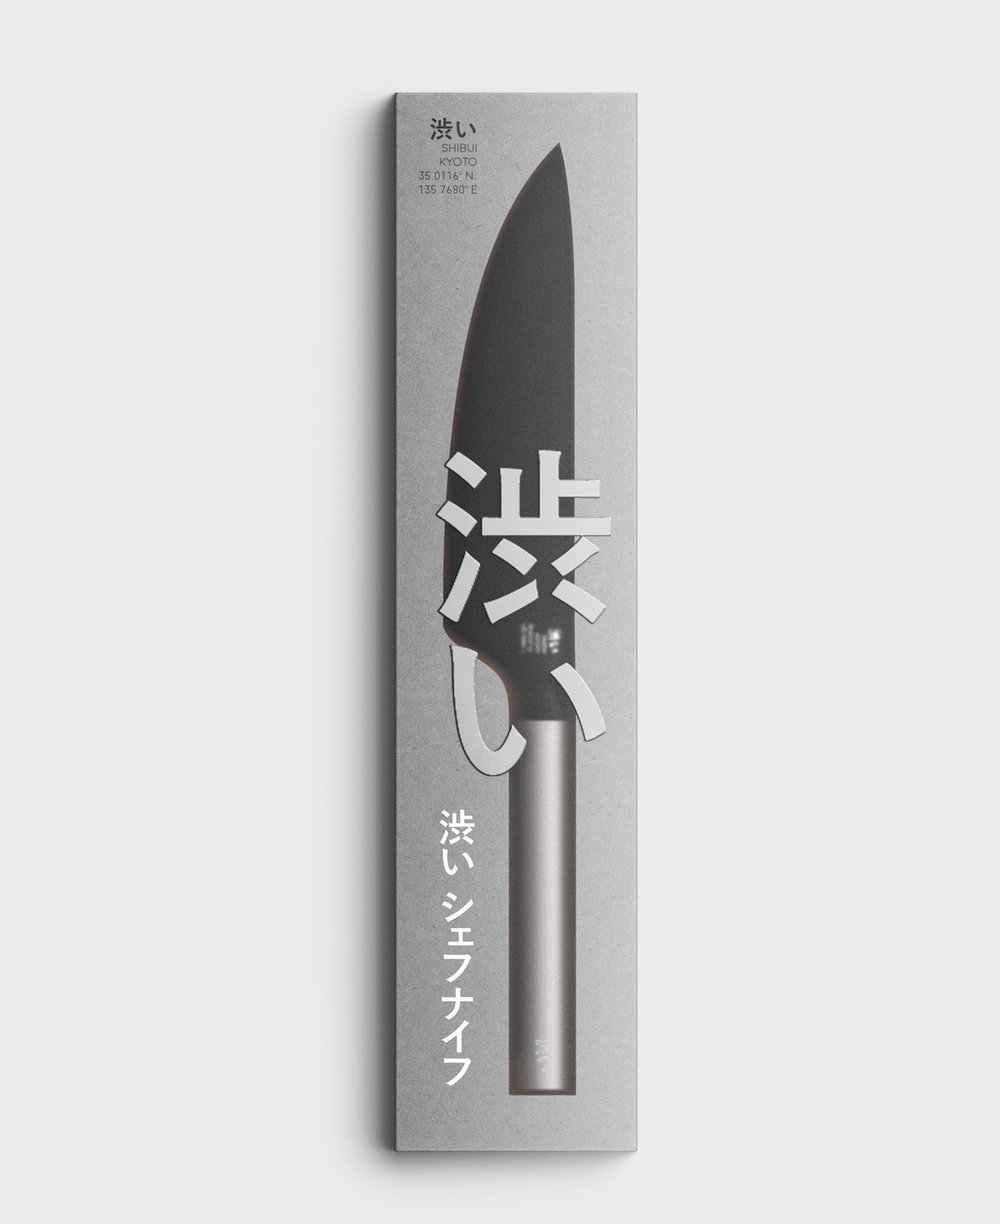 Abidur_Chowdhury_KnifePackaging_1.jpg